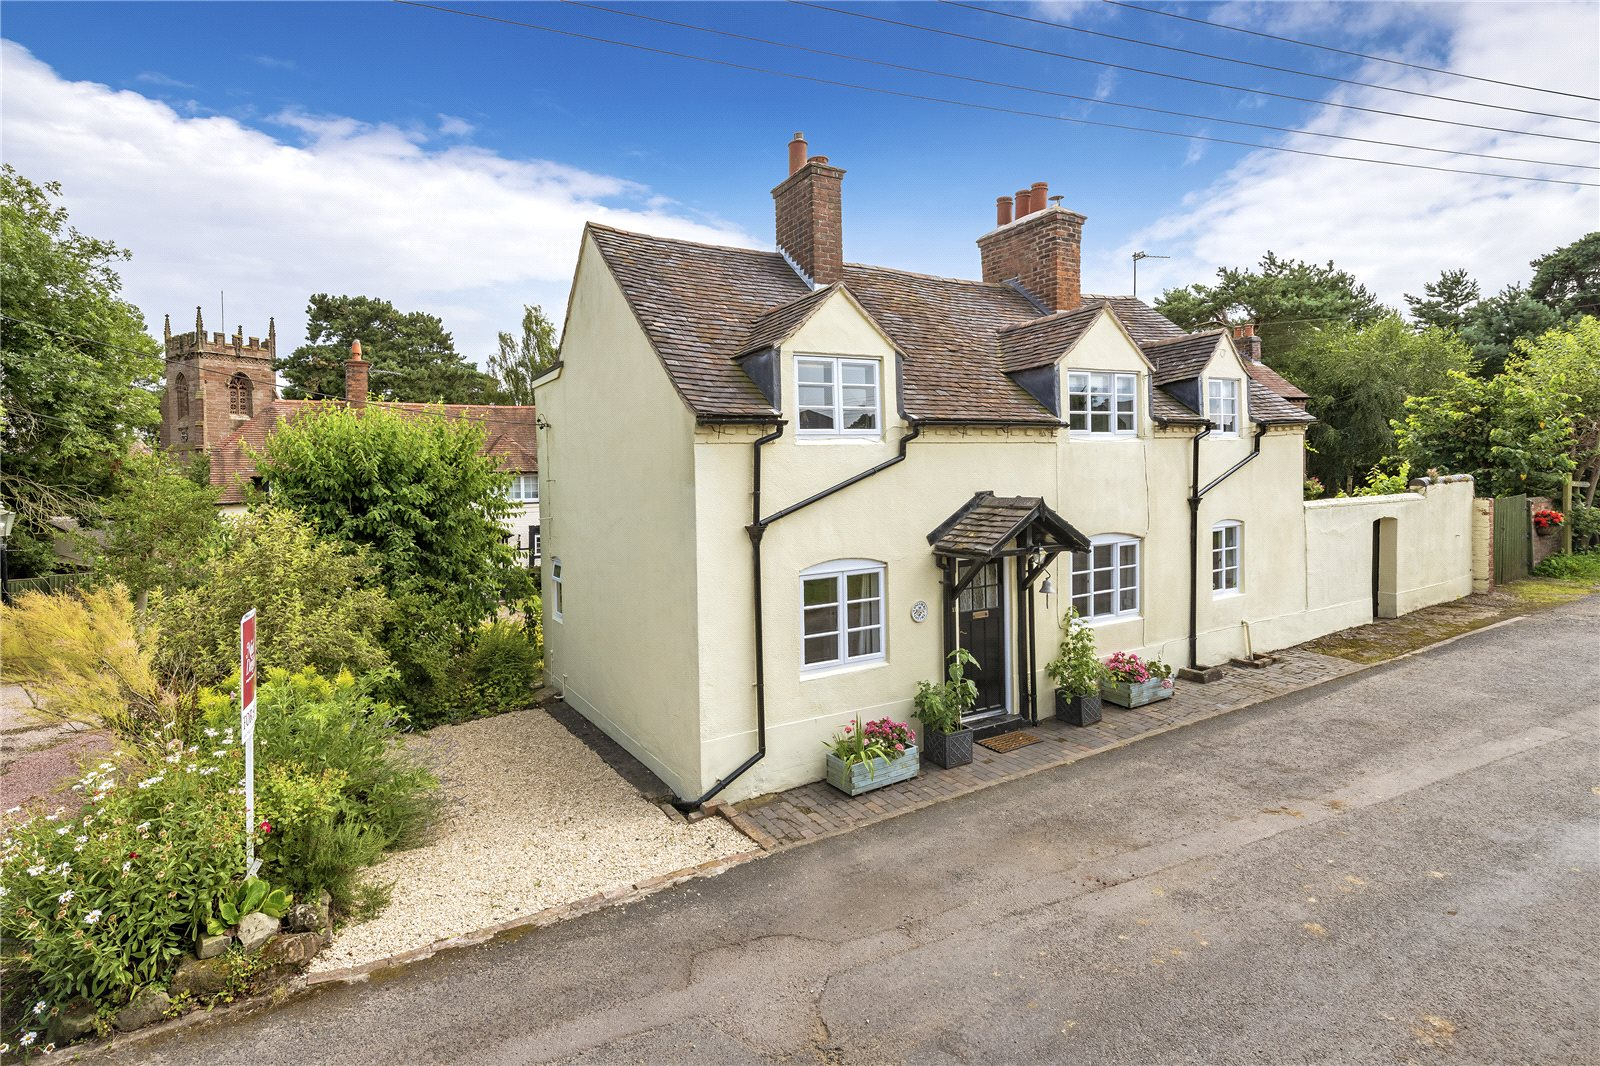 Longcourt Cottage, 11 Pipers Lane, Edgmond, Newport, TF10